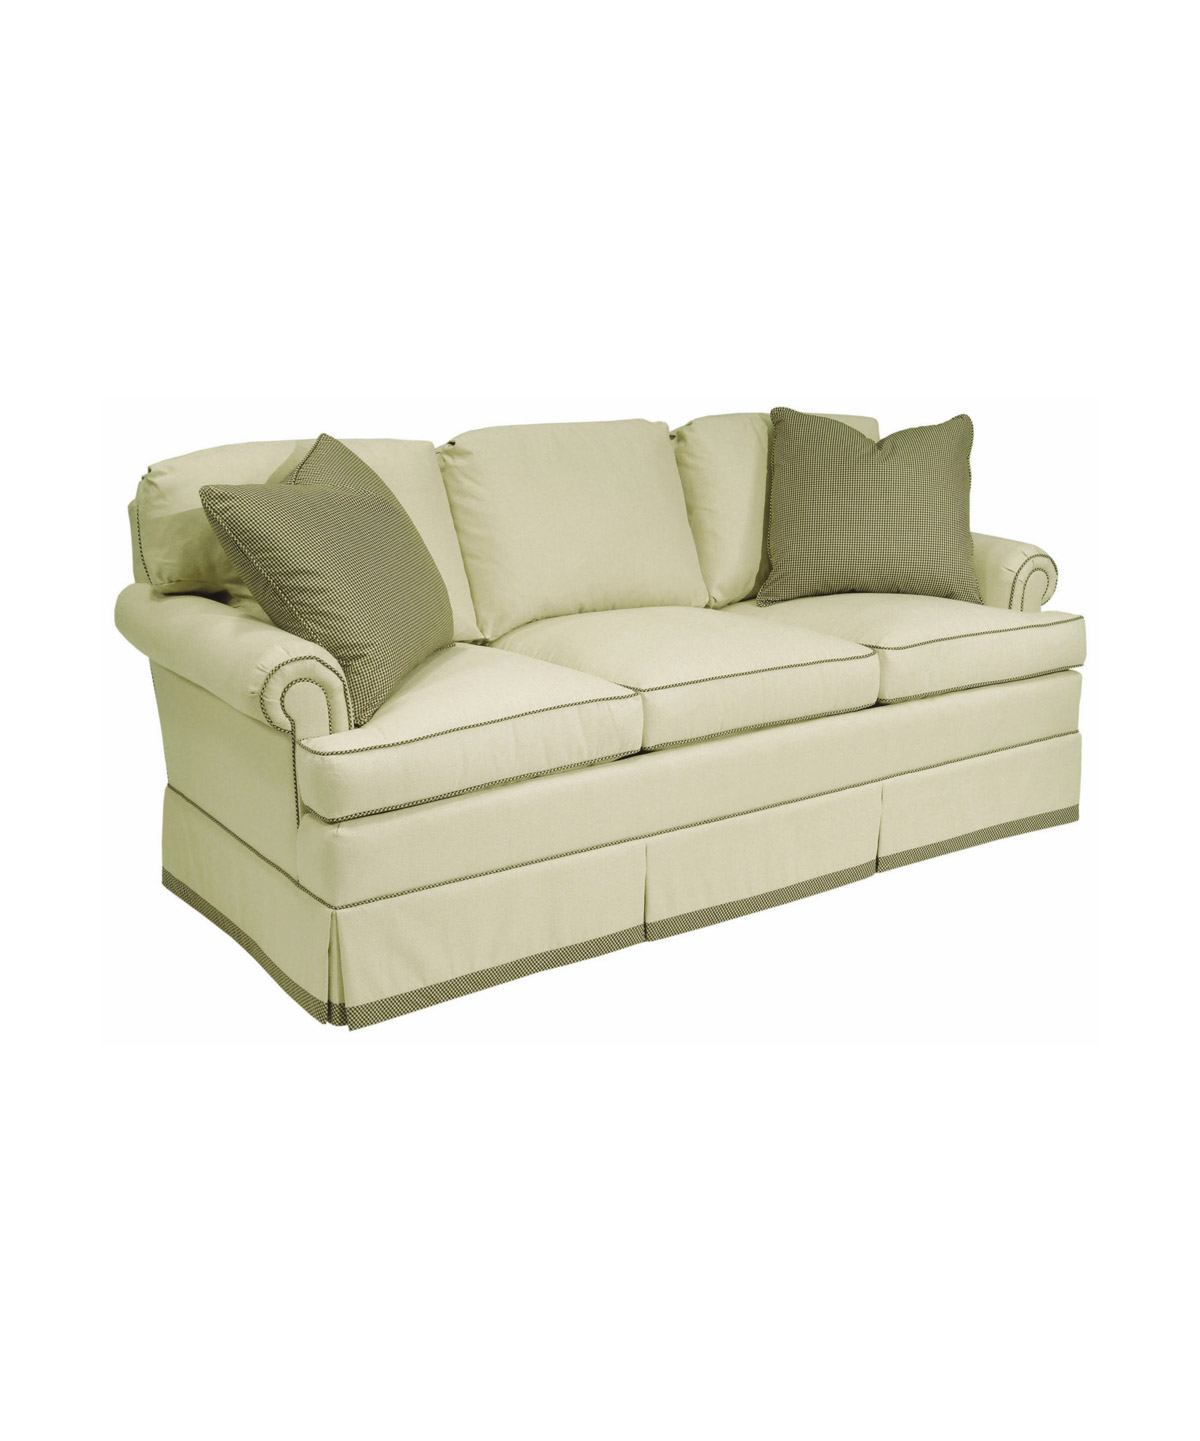 Suffolk Sofa M2M